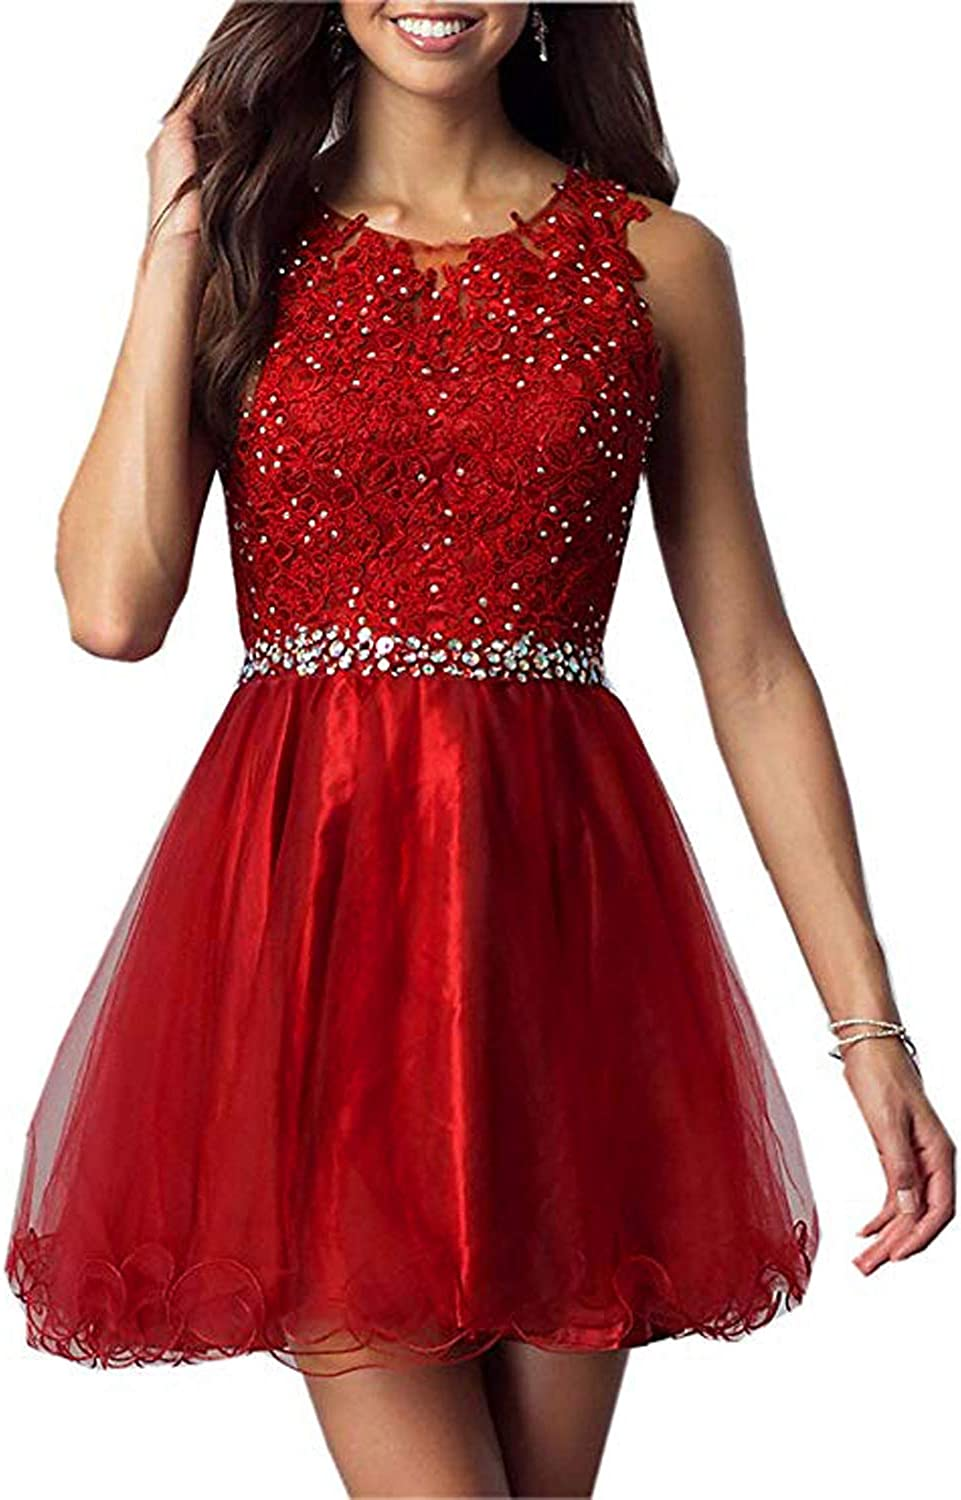 CIRCLEWLD Jeweled Aplliques Short Homecoming Dresses Seniors Prom Tutu Ballgown Sweet 16 H375